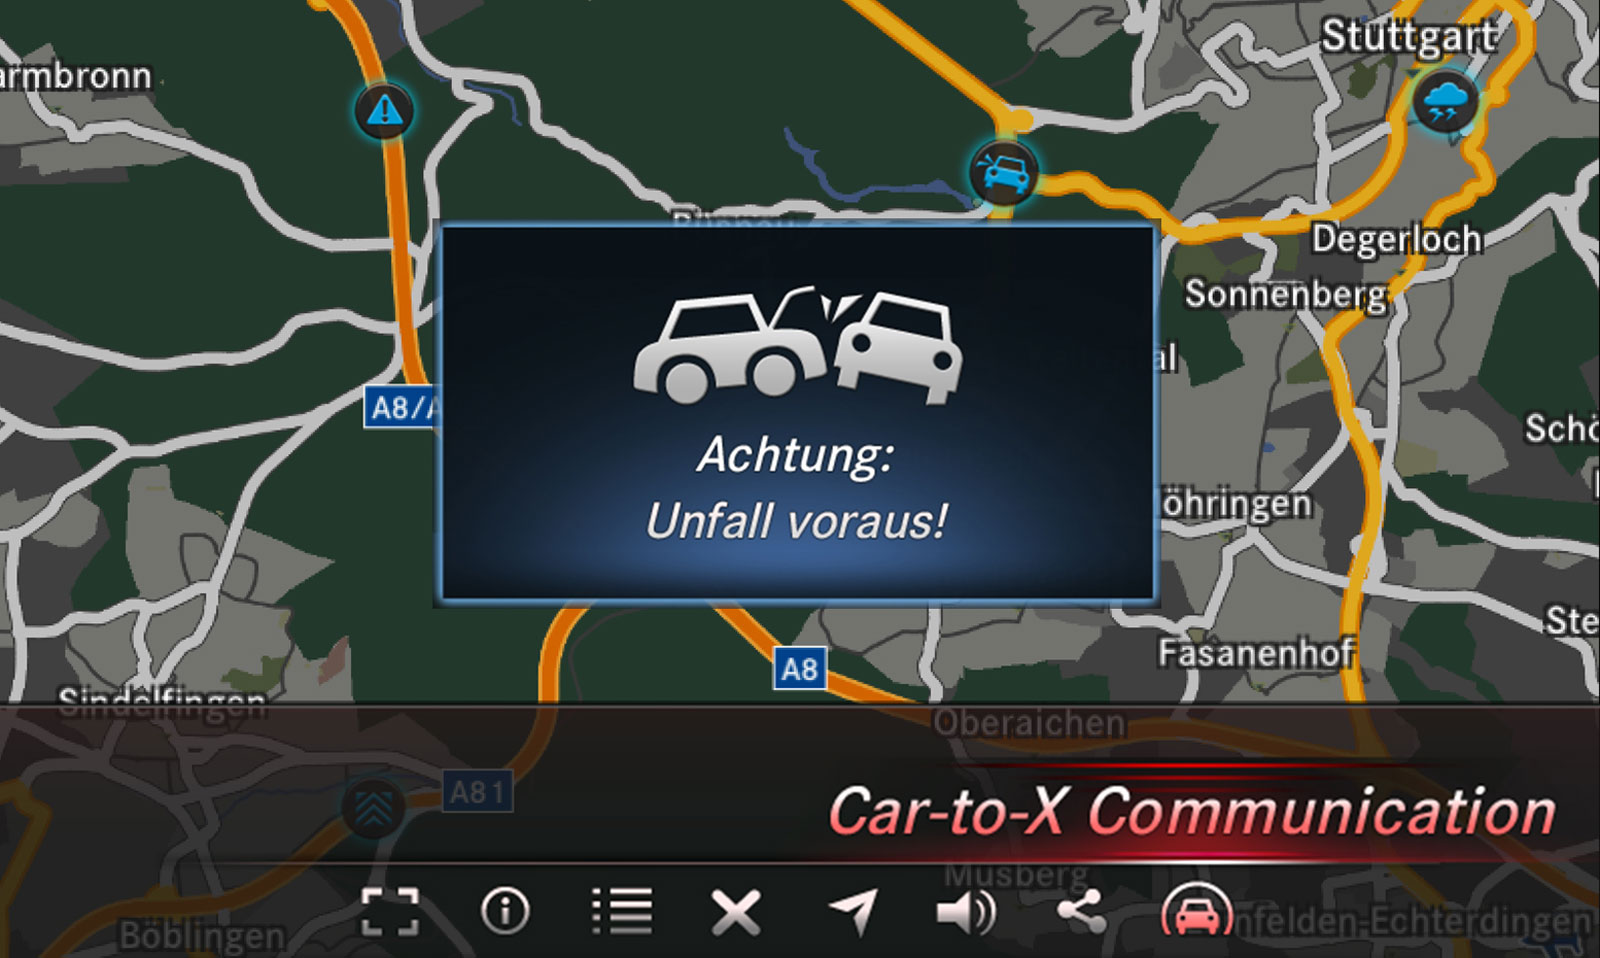 Mercedes-Benz To Offer Car-2-Car Communication This year